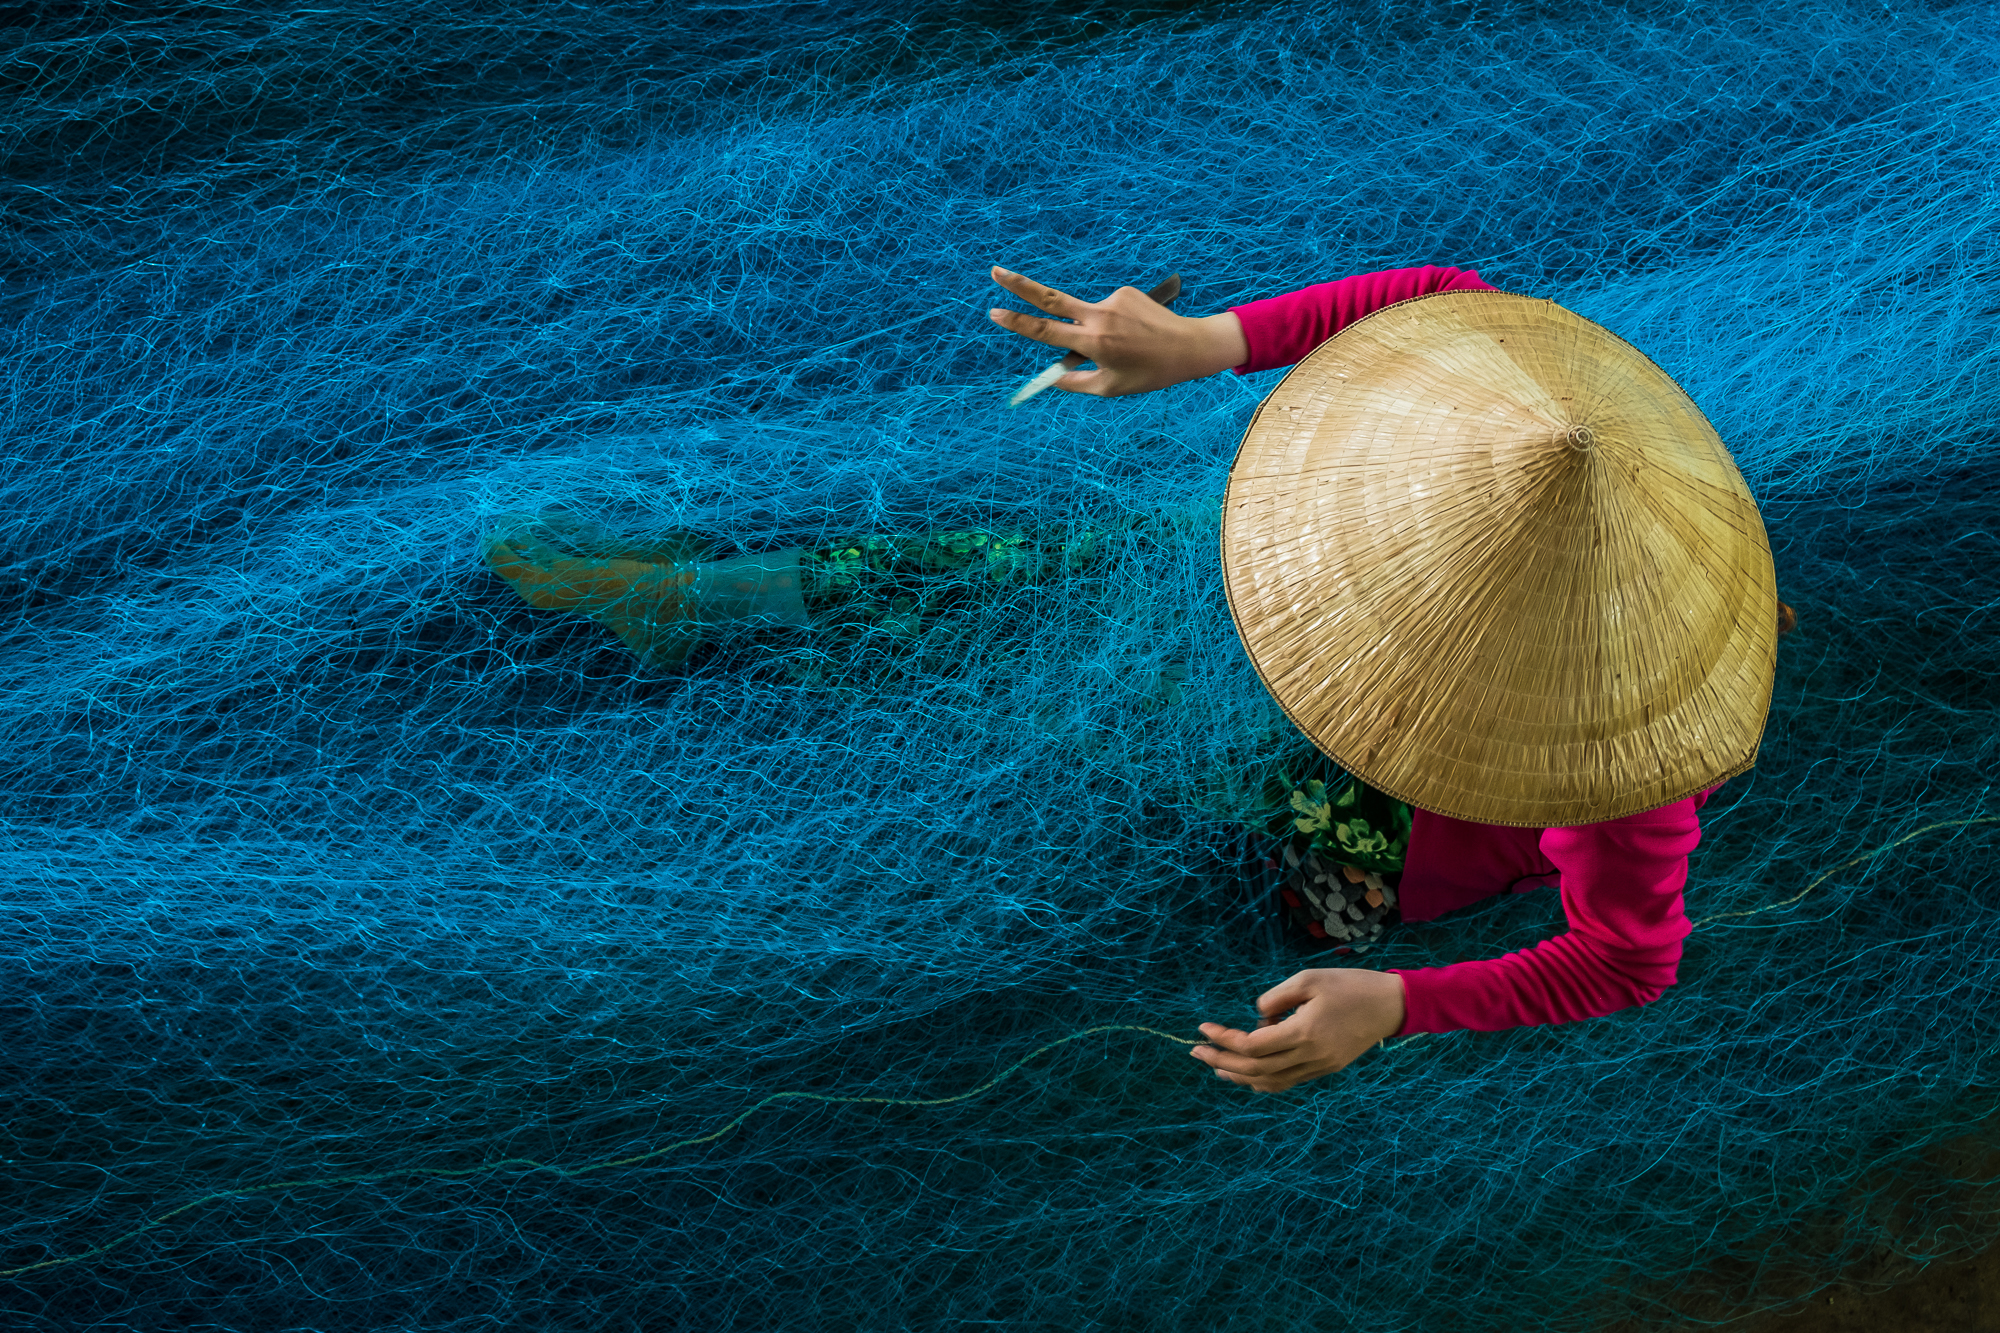 A lady is seen as she is busy in repairing the nets in a workshop situated in the outskirts of Bac Lieu, Vietnam